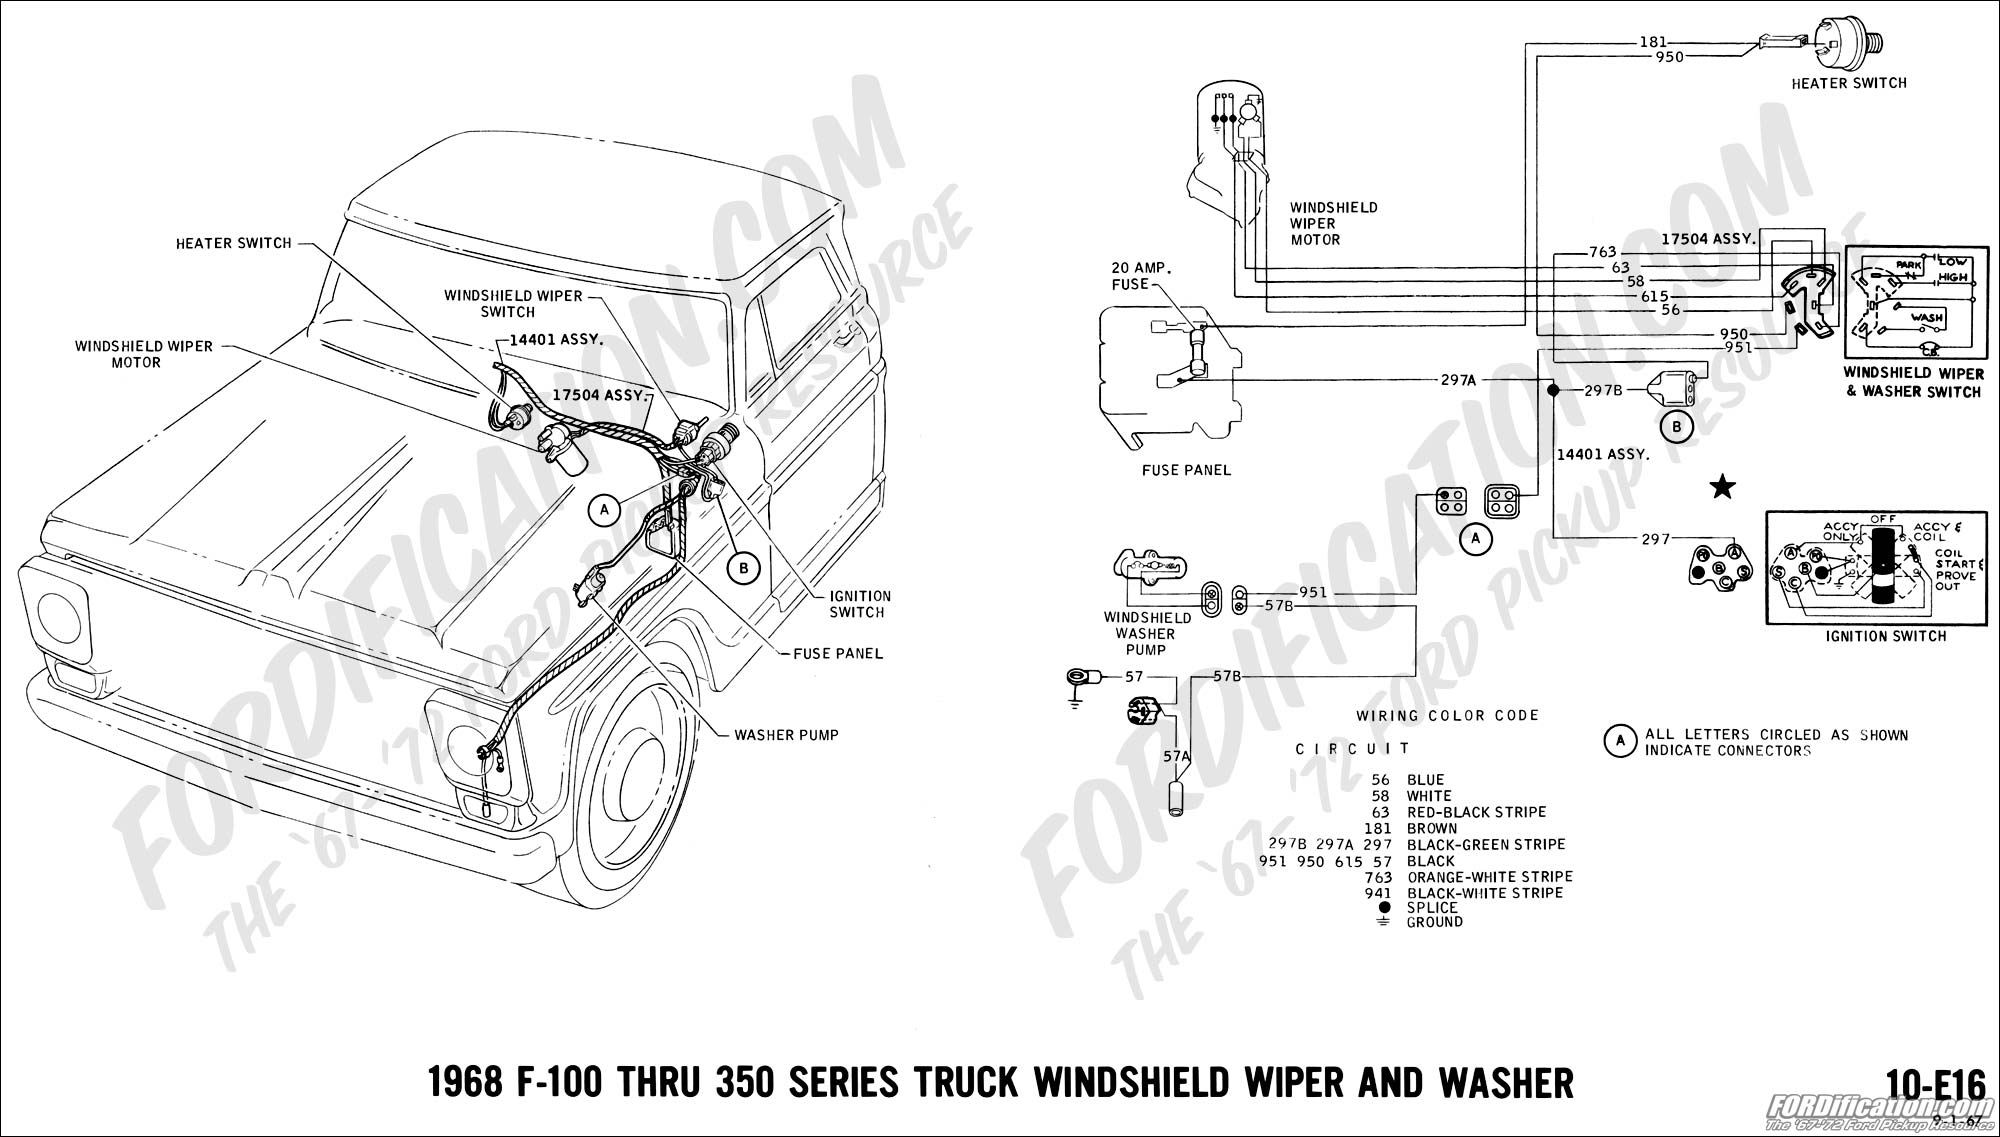 1997 Chevy Silverado 1500 Fuse Panel Location Circuit Wiring And 1996 Cheyenne Box Diagram Ford Truck Technical Drawings Schematics Section H 1999